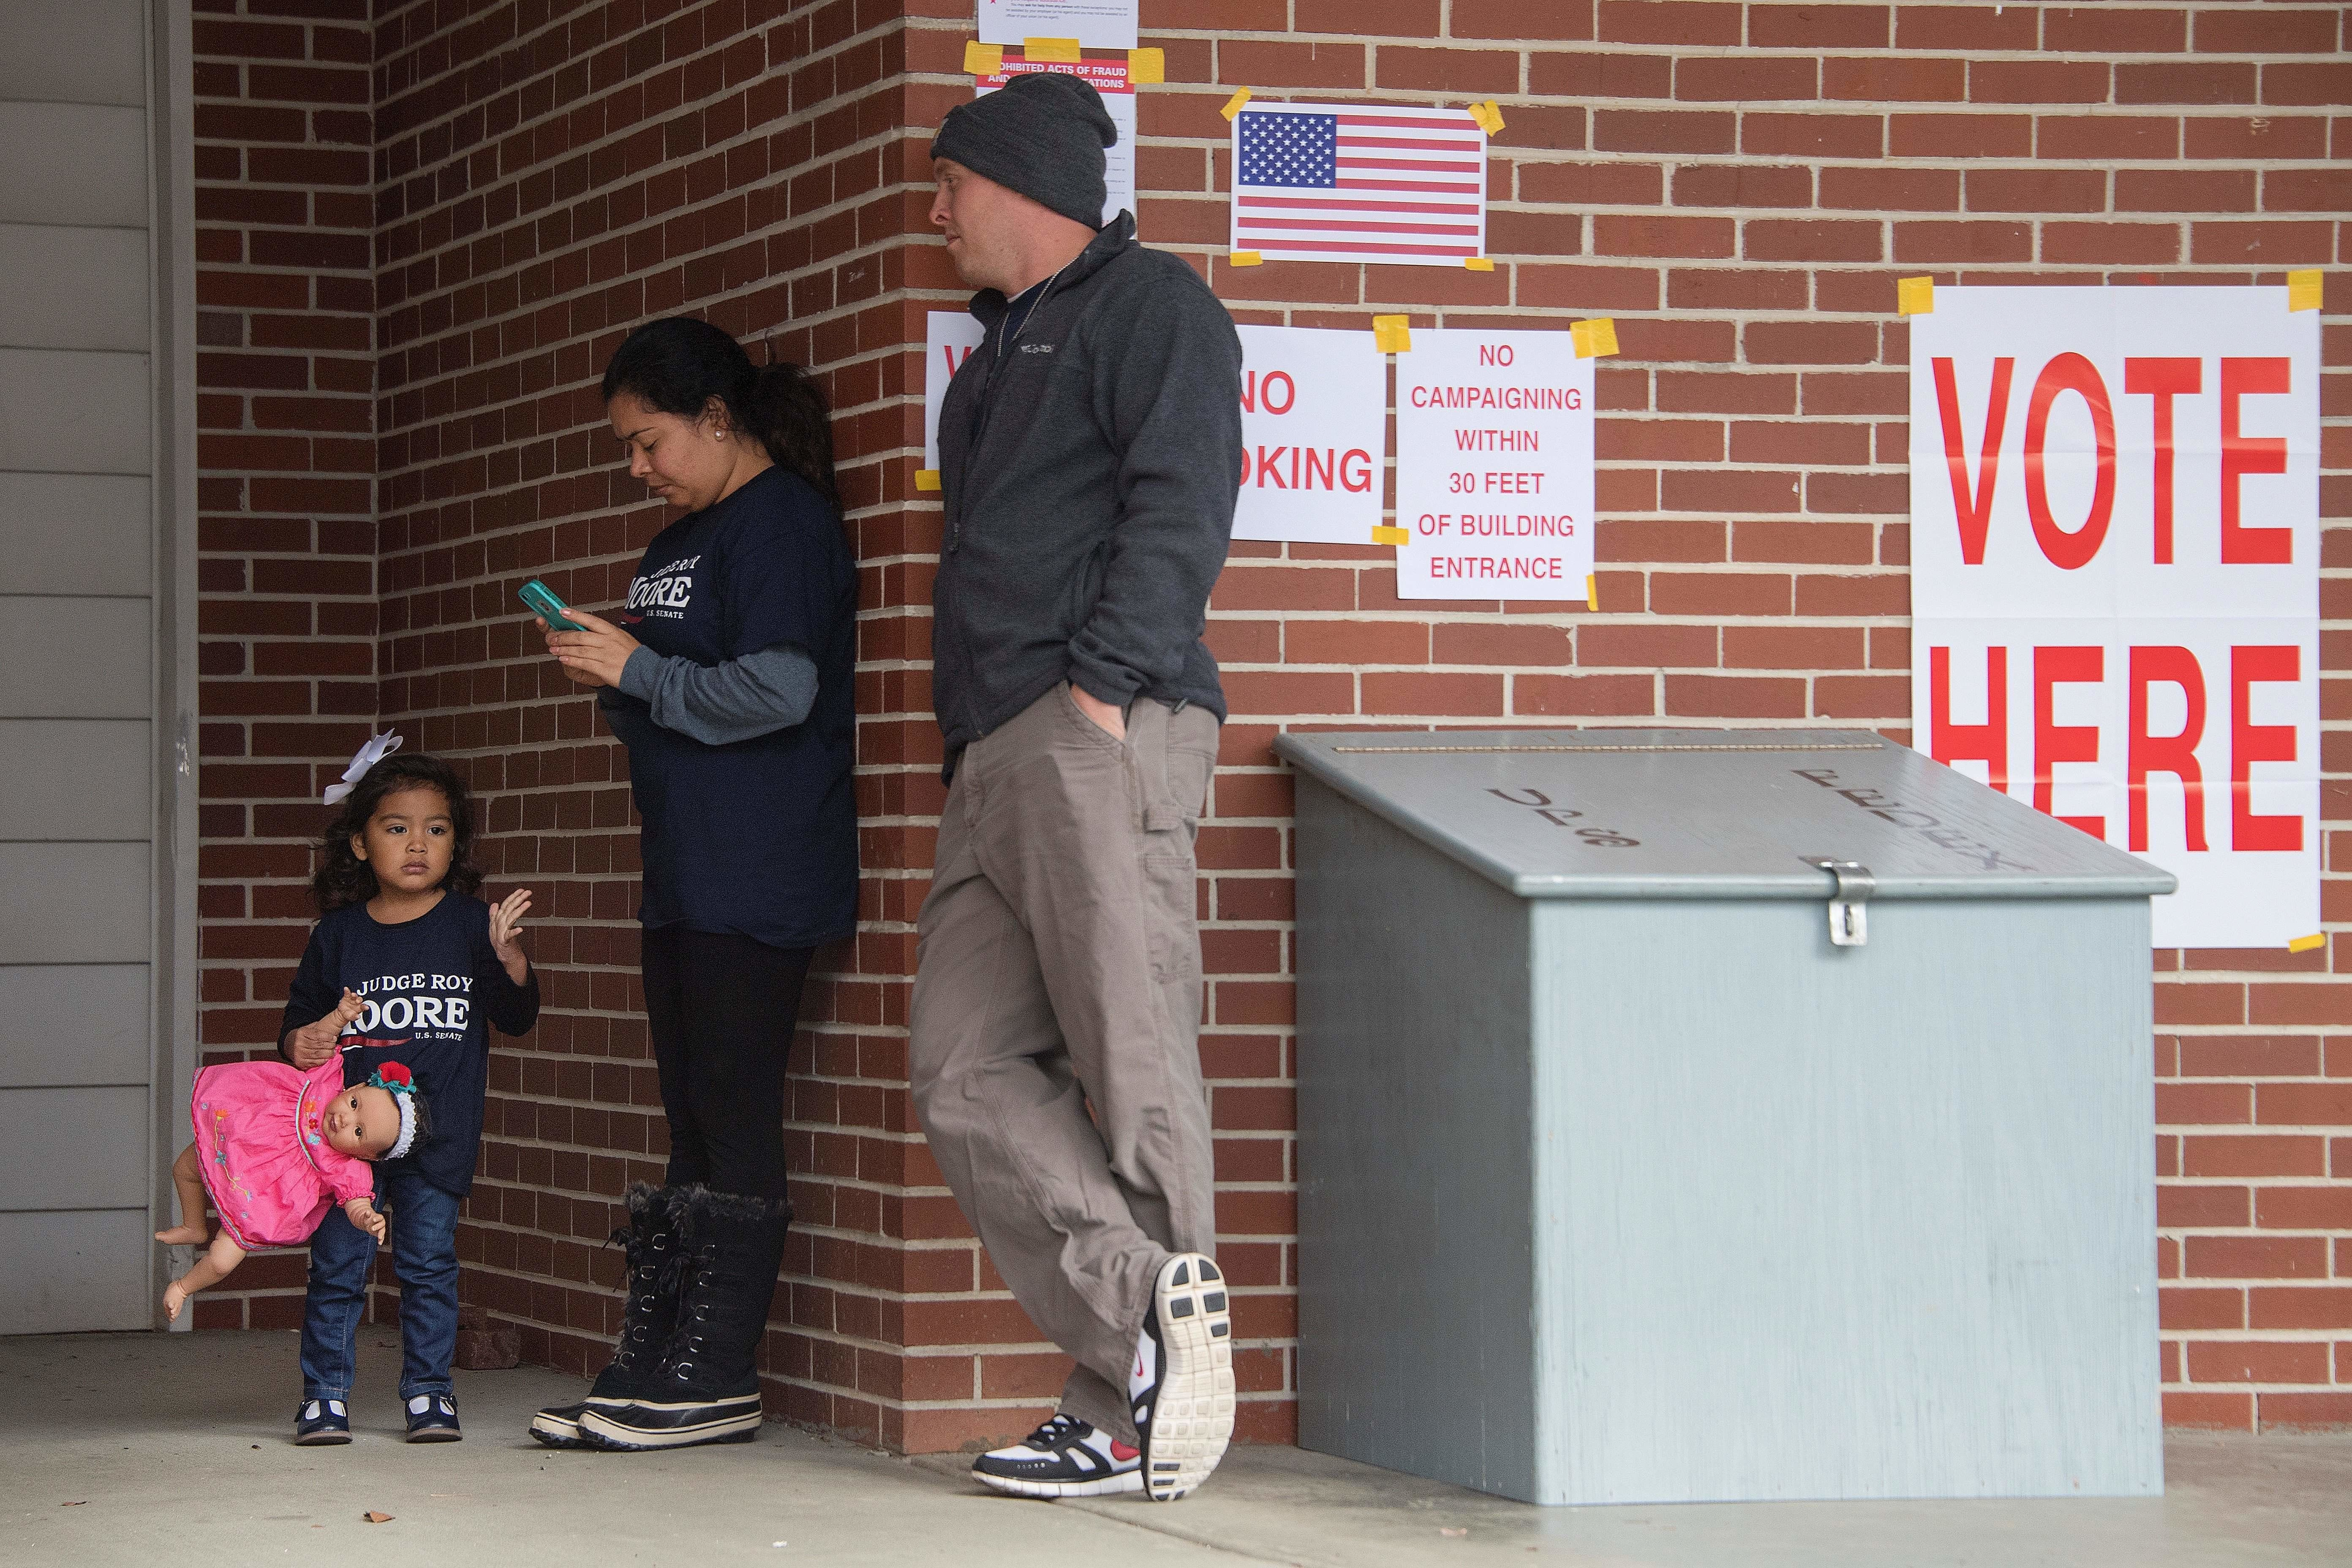 Supporters of Republican Senatorial candidate Roy Moore (L) wait outside a polling station to vote in Gallant, AL, on December 12, 2017. The state of Alabama holds a closely-watched special election for US Senate featuring Republican candidate Roy Moore, who is endorsed by President Donald Trump despite being accused of molesting teenaged girls. / AFP PHOTO / JIM WATSON        (Photo credit should read JIM WATSON/AFP/Getty Images)